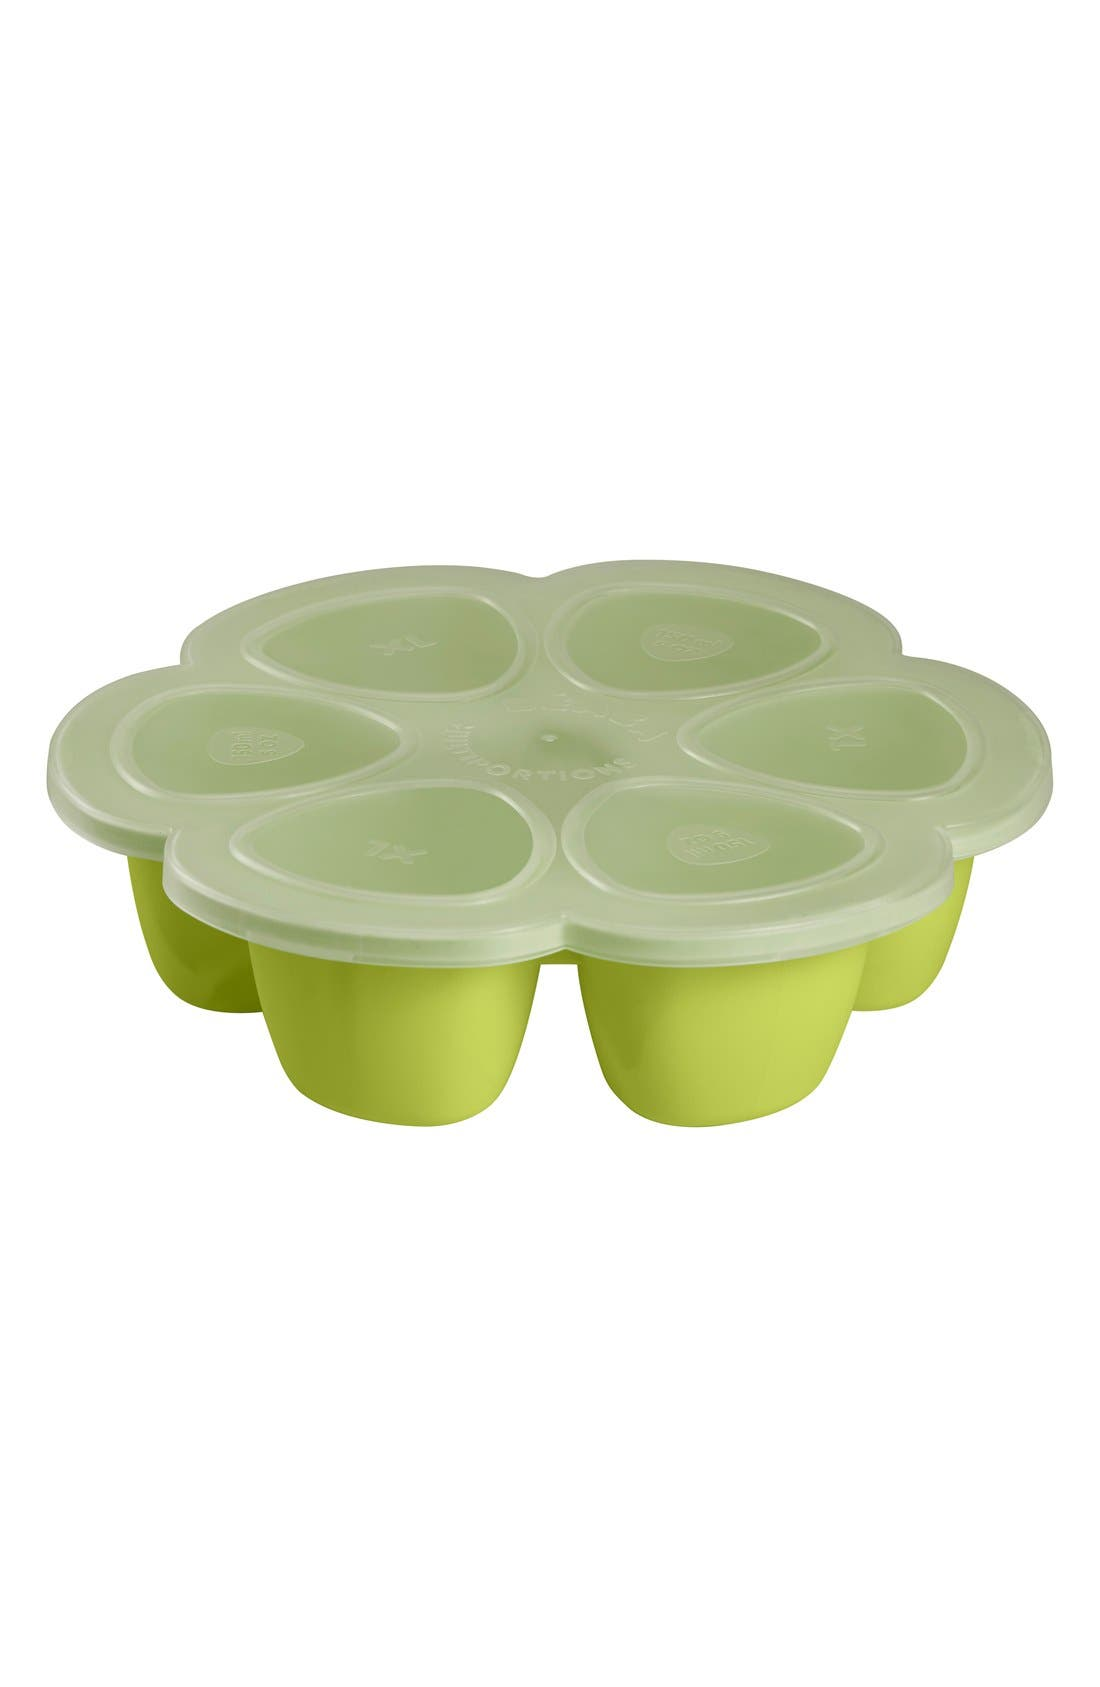 'Multiportions' 3 oz. Food Cup Tray,                             Alternate thumbnail 2, color,                             Neon